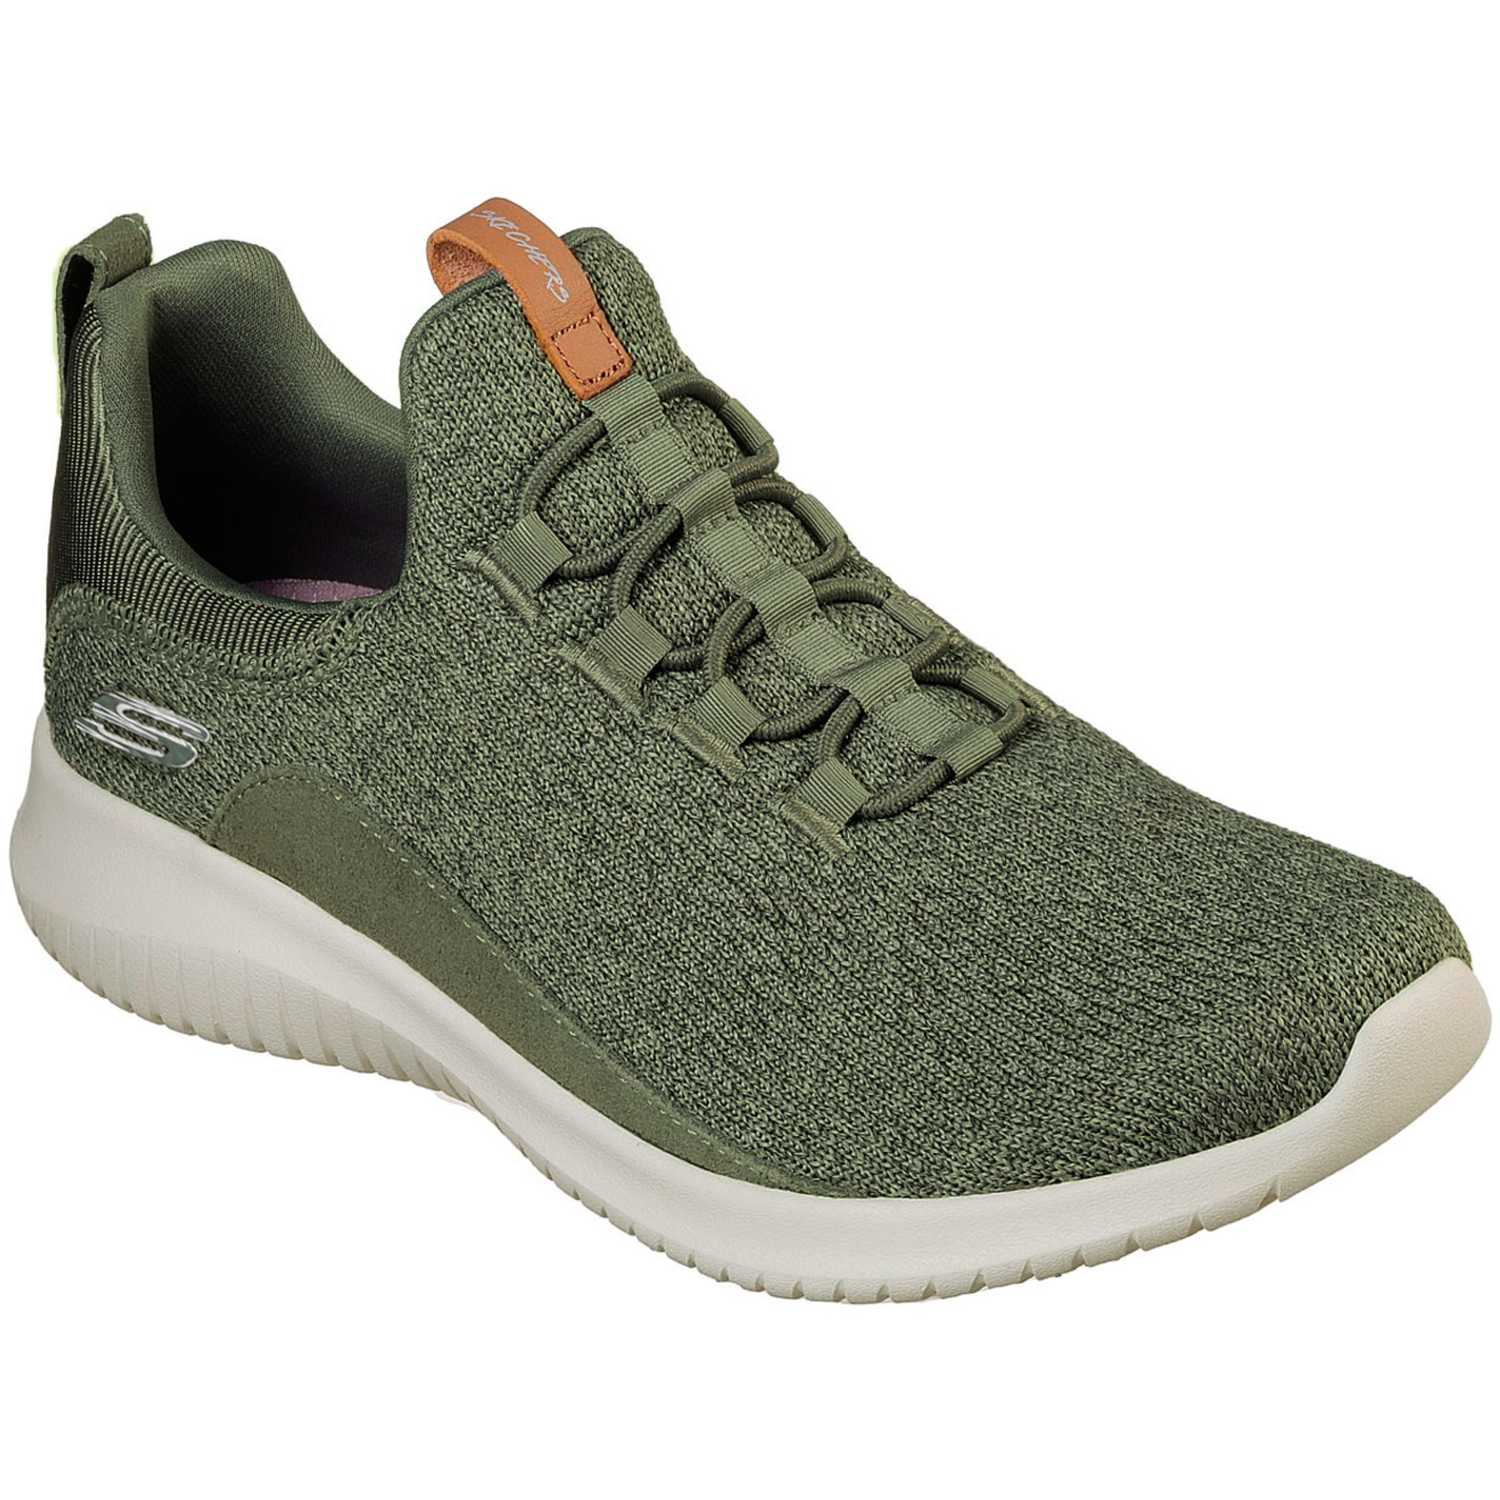 Skechers ultra flex - new season Verde Walking